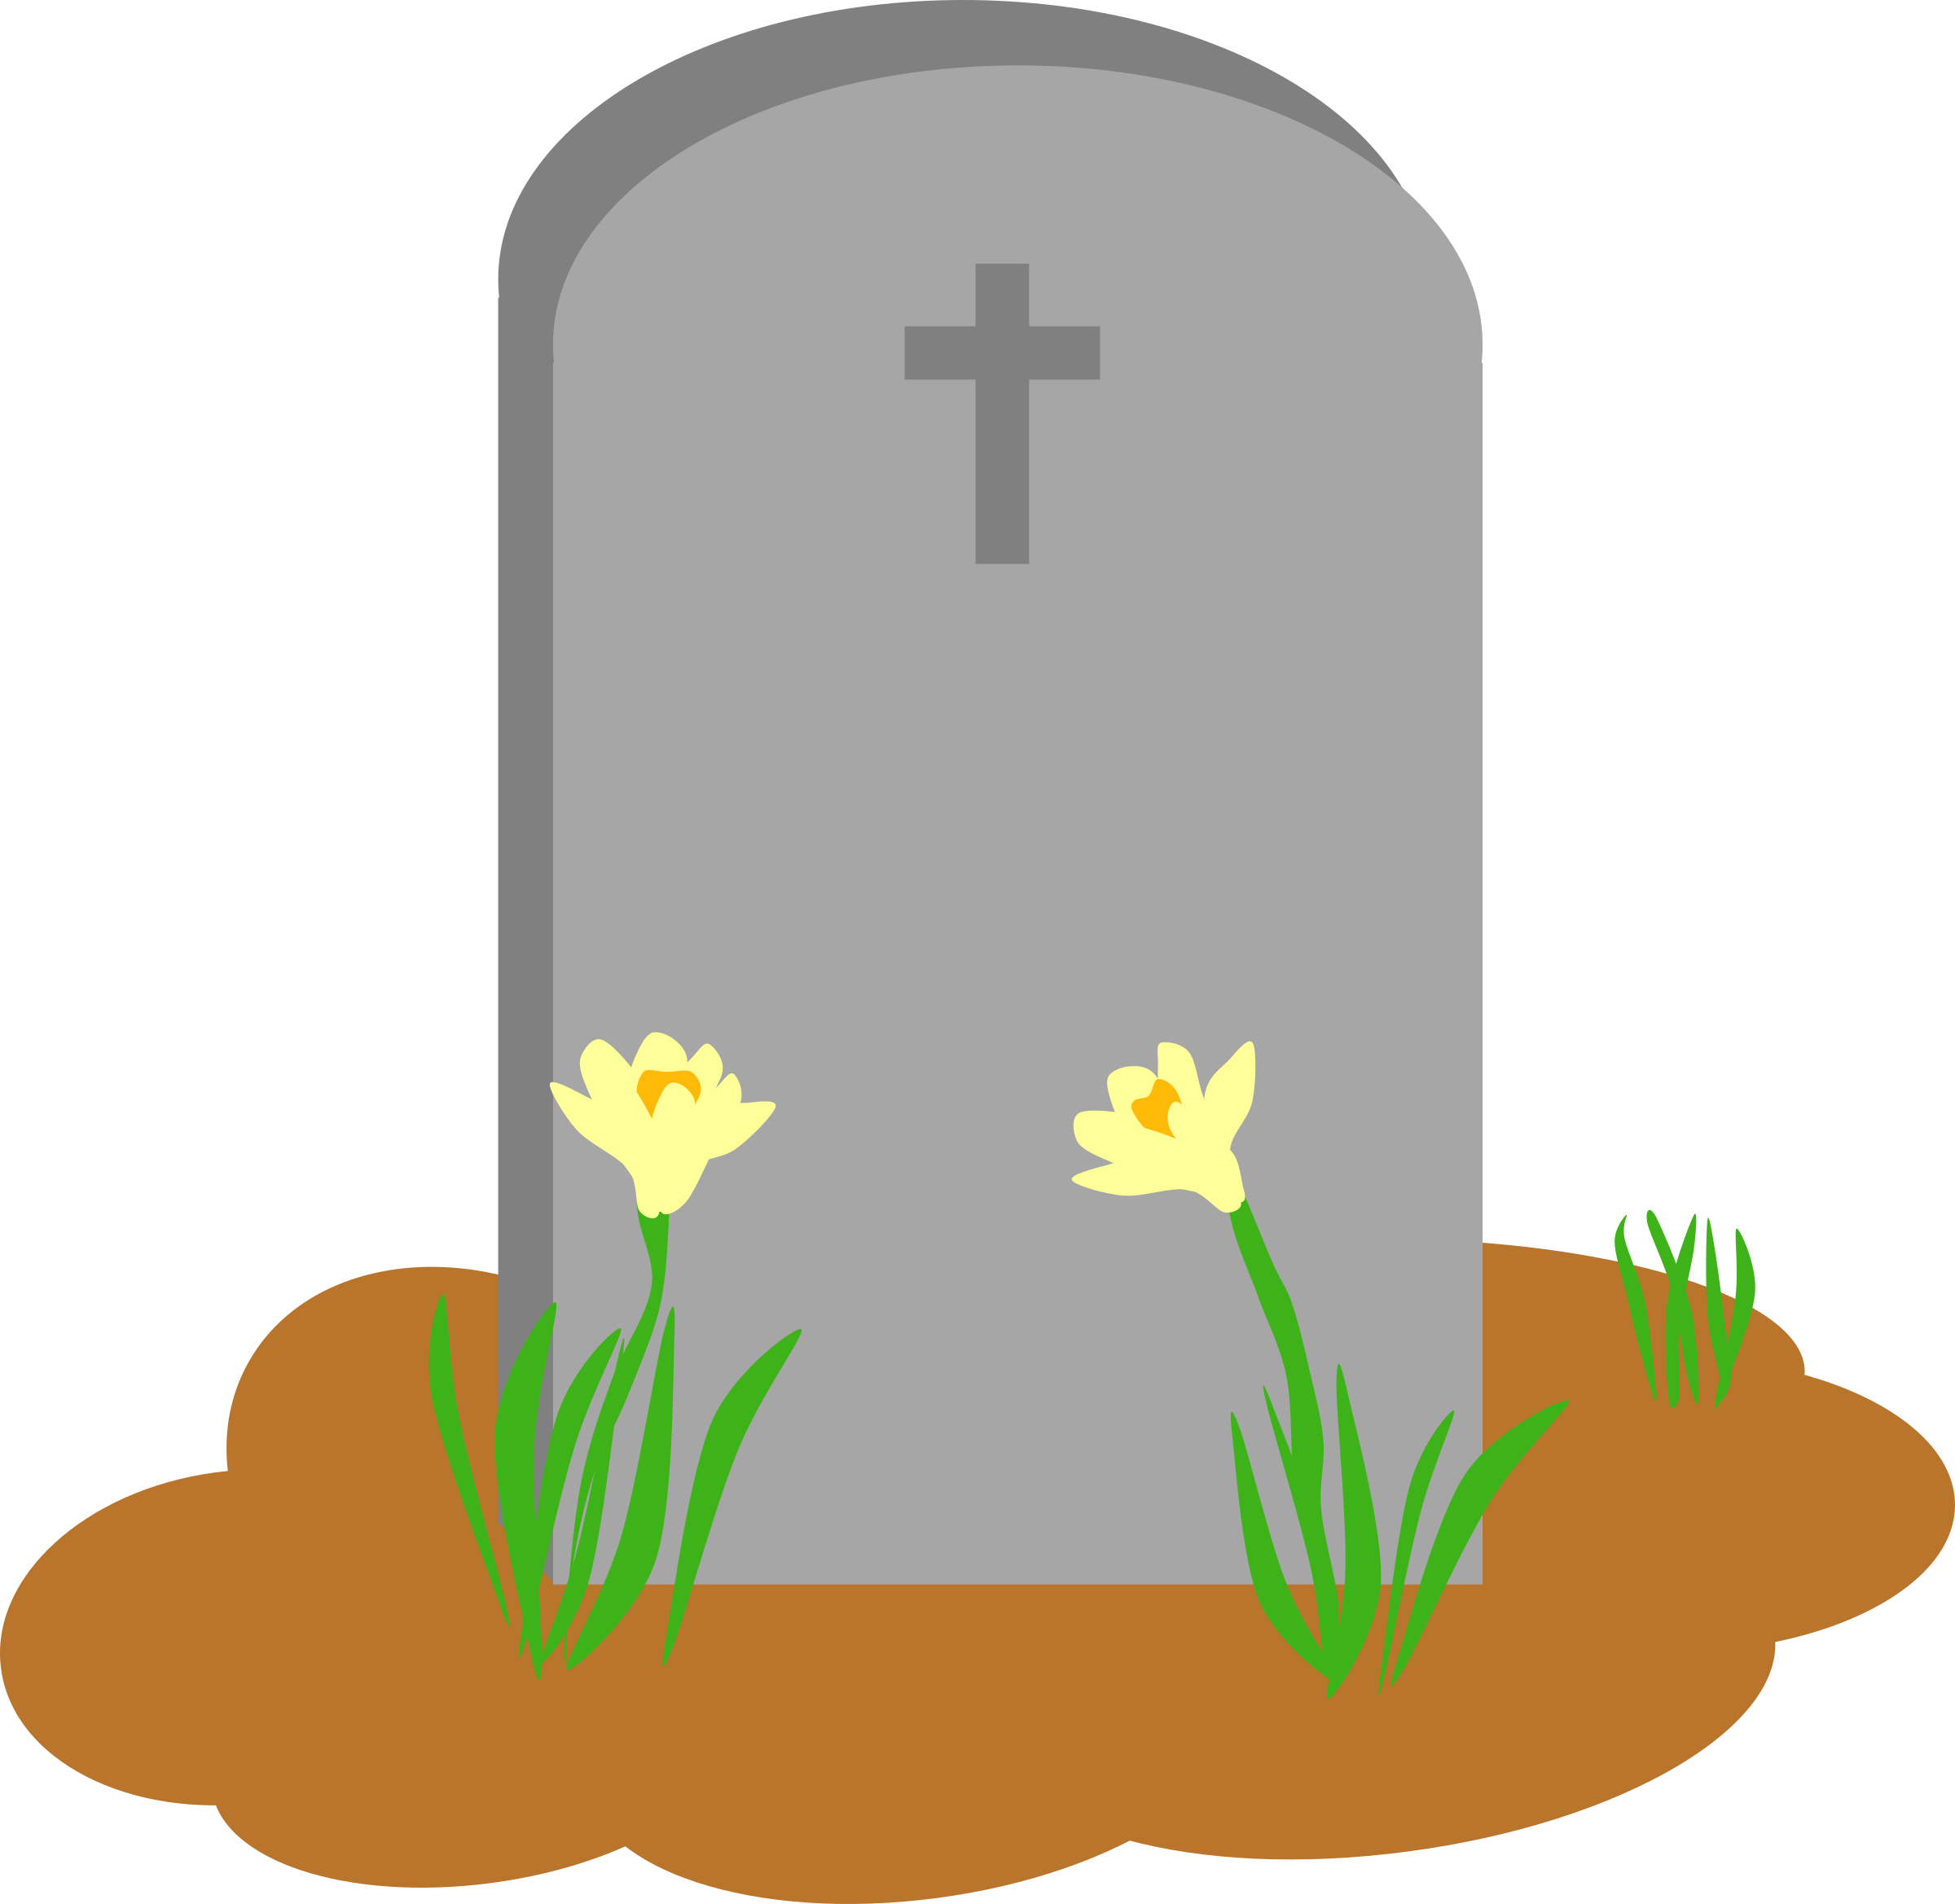 Grave cross clipart jpg free library 28+ Collection of Grave Clipart Transparent | High quality, free ... jpg free library